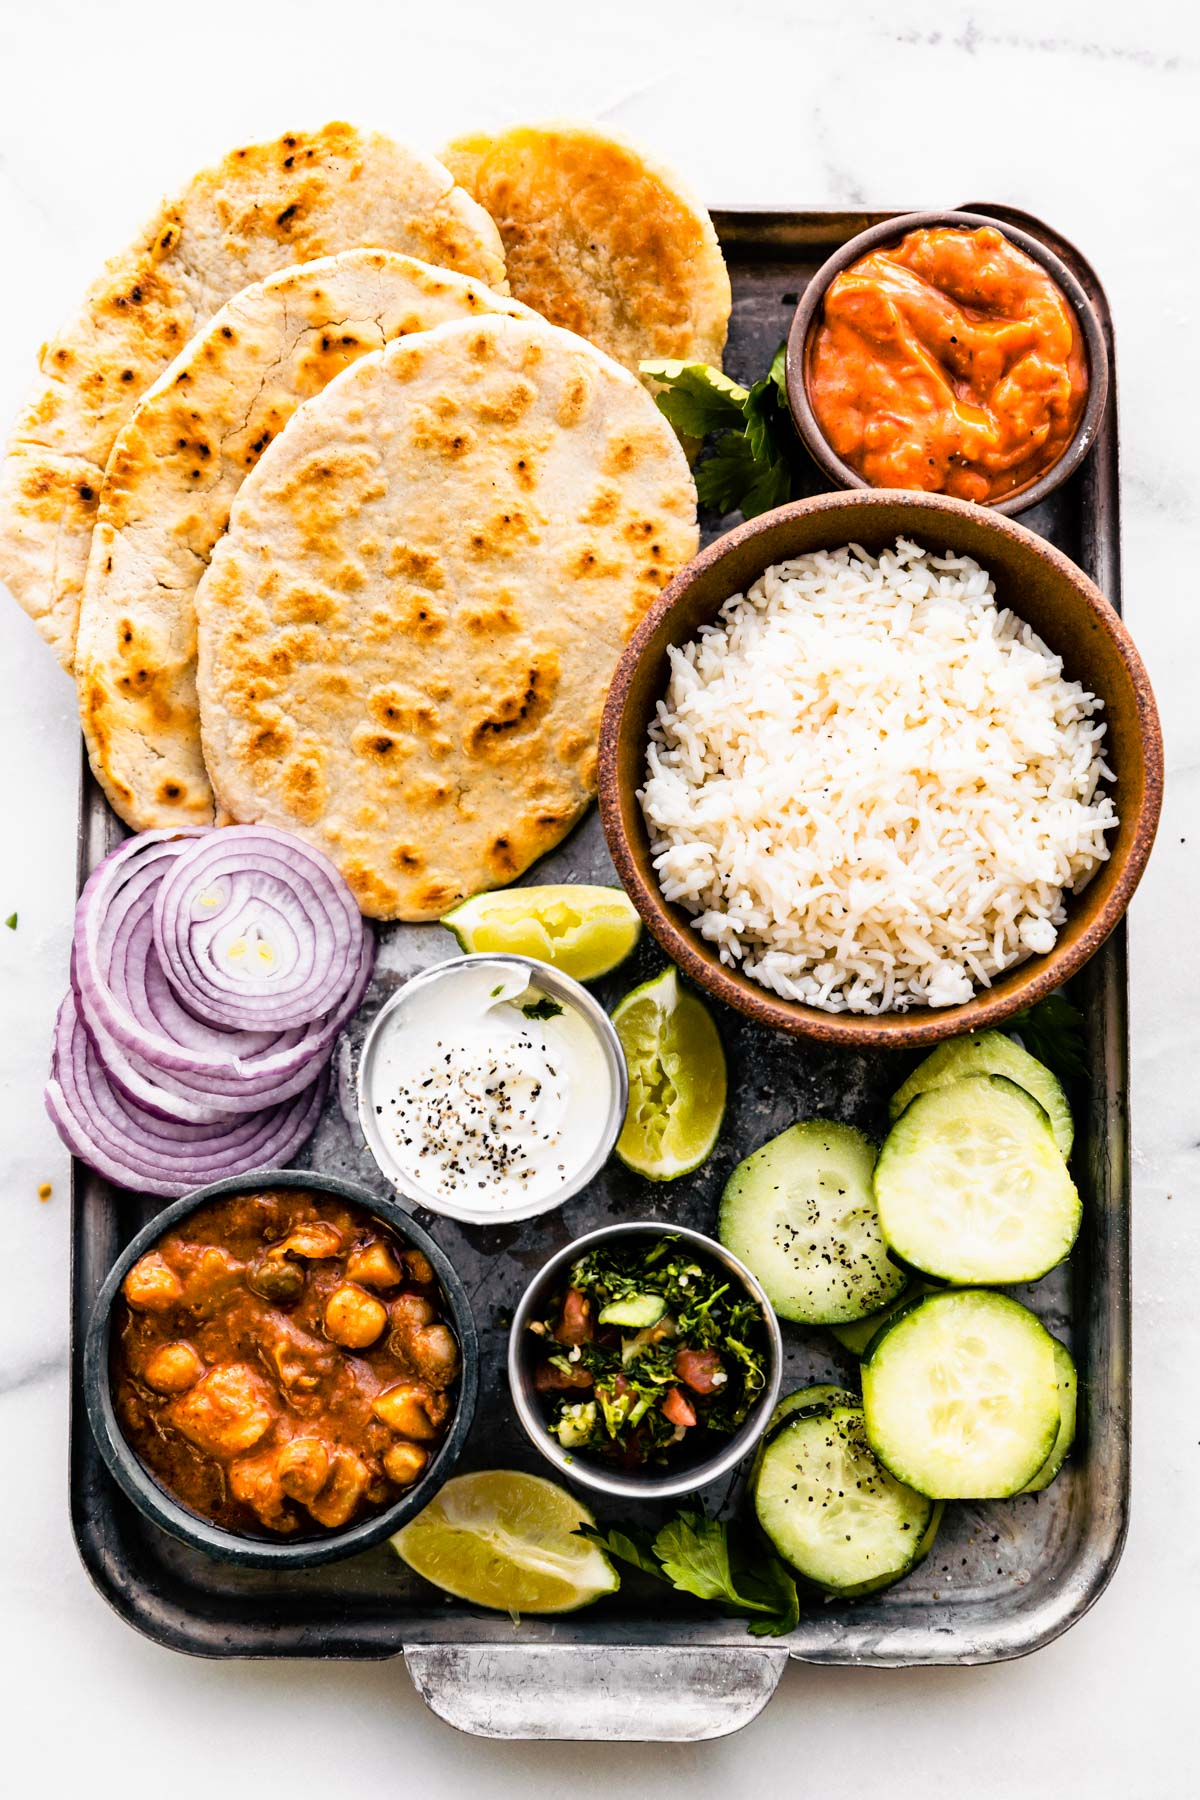 Grain Free Naan with Cassava Flour! Arranged on a pan with vegetables and curry dips plus rice. Back drop is green.